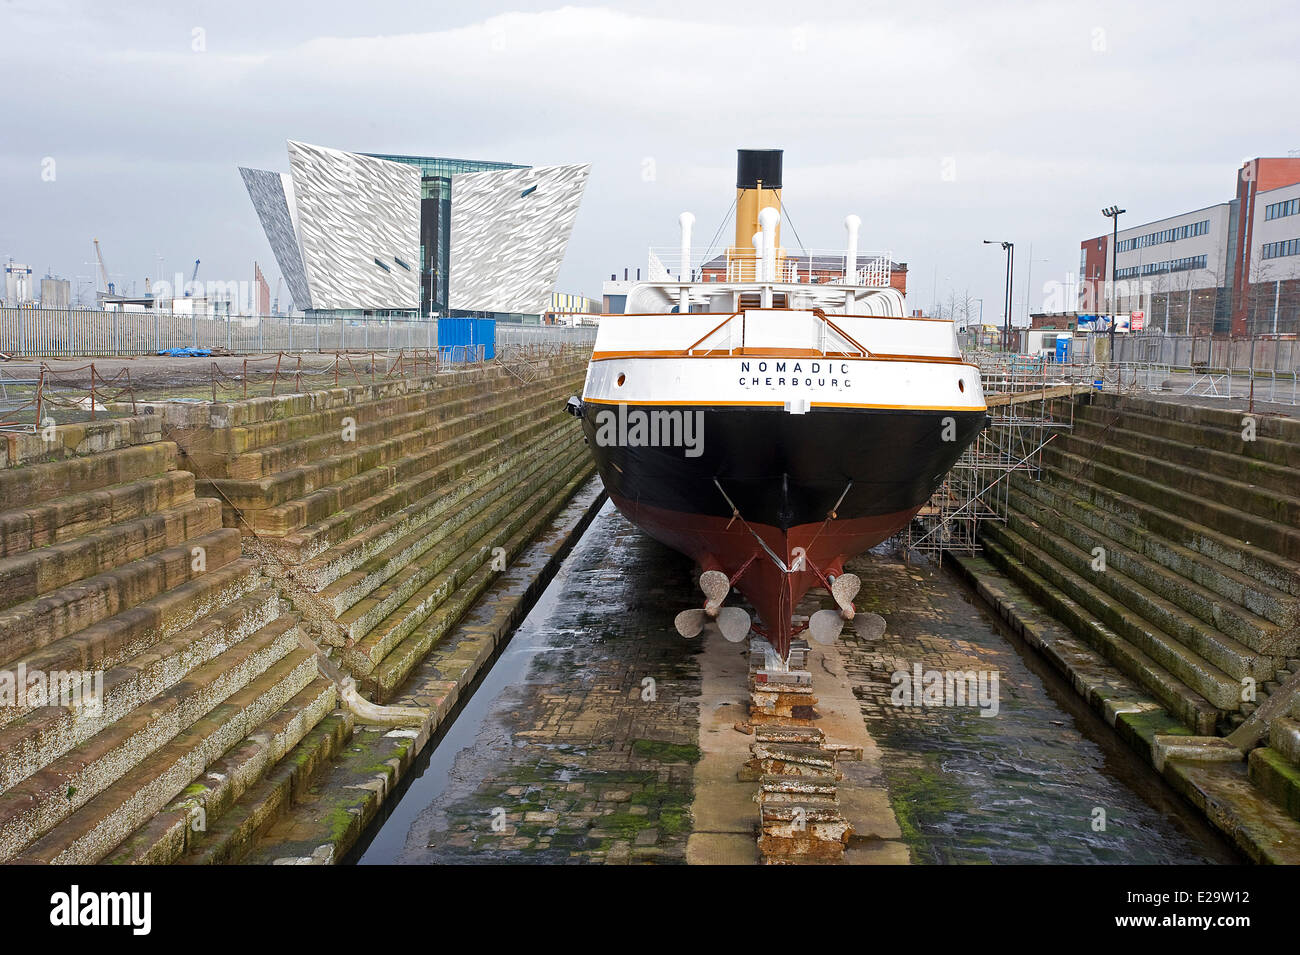 United Kingdom, Northern Ireland, Belfast, the Titanic Belfast museum and the Nomadic, the ship used to transfer - Stock Image